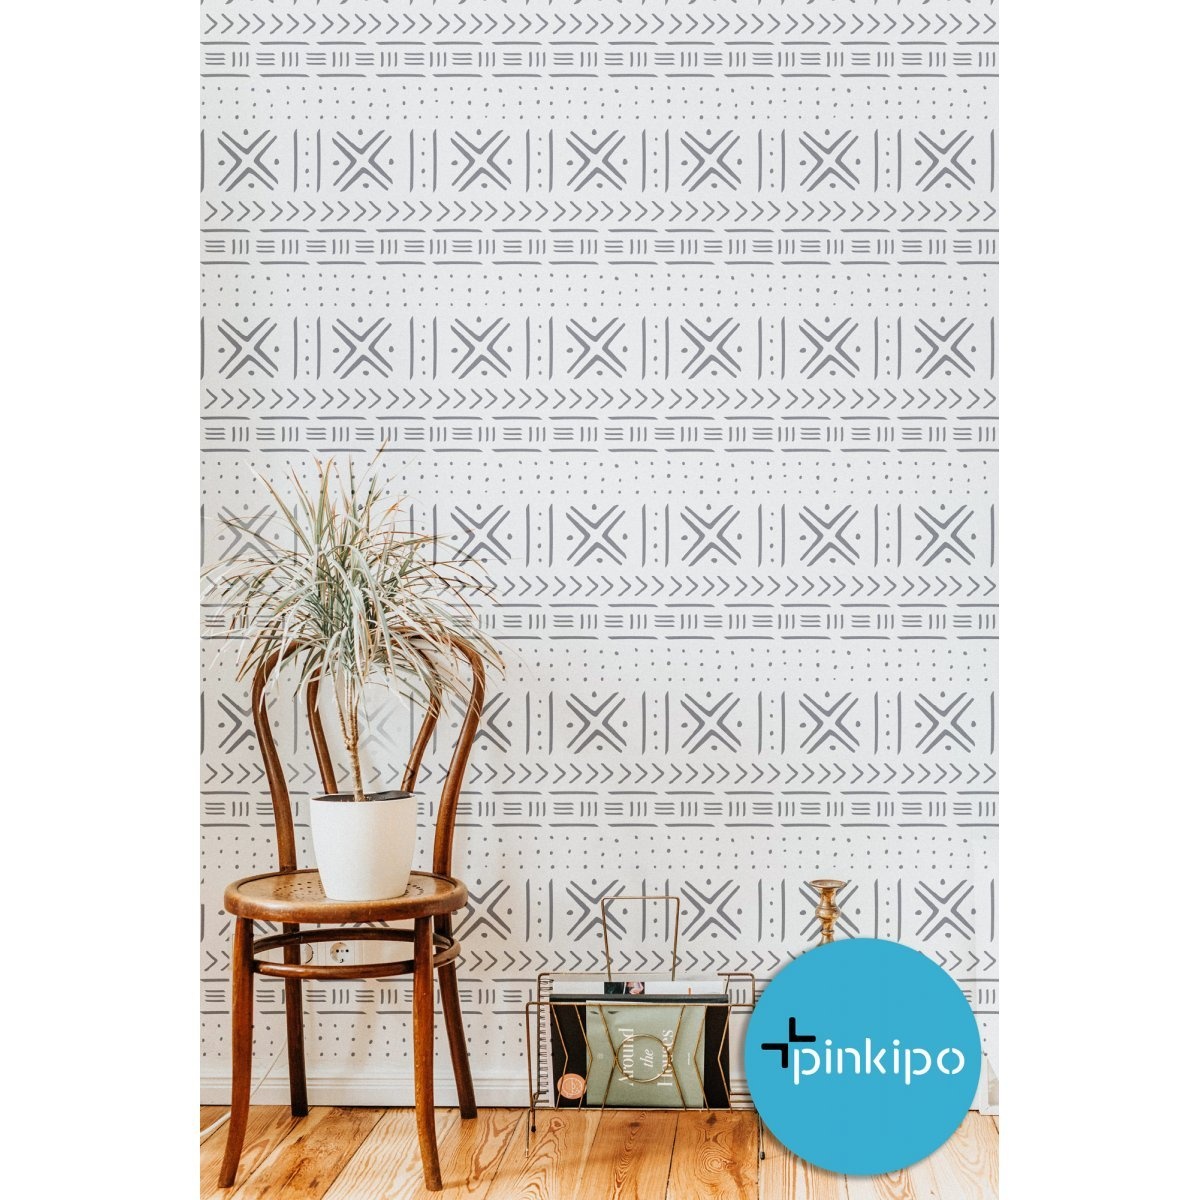 Mudcloth / Reusable Allover Large Wall Stencils for Painting